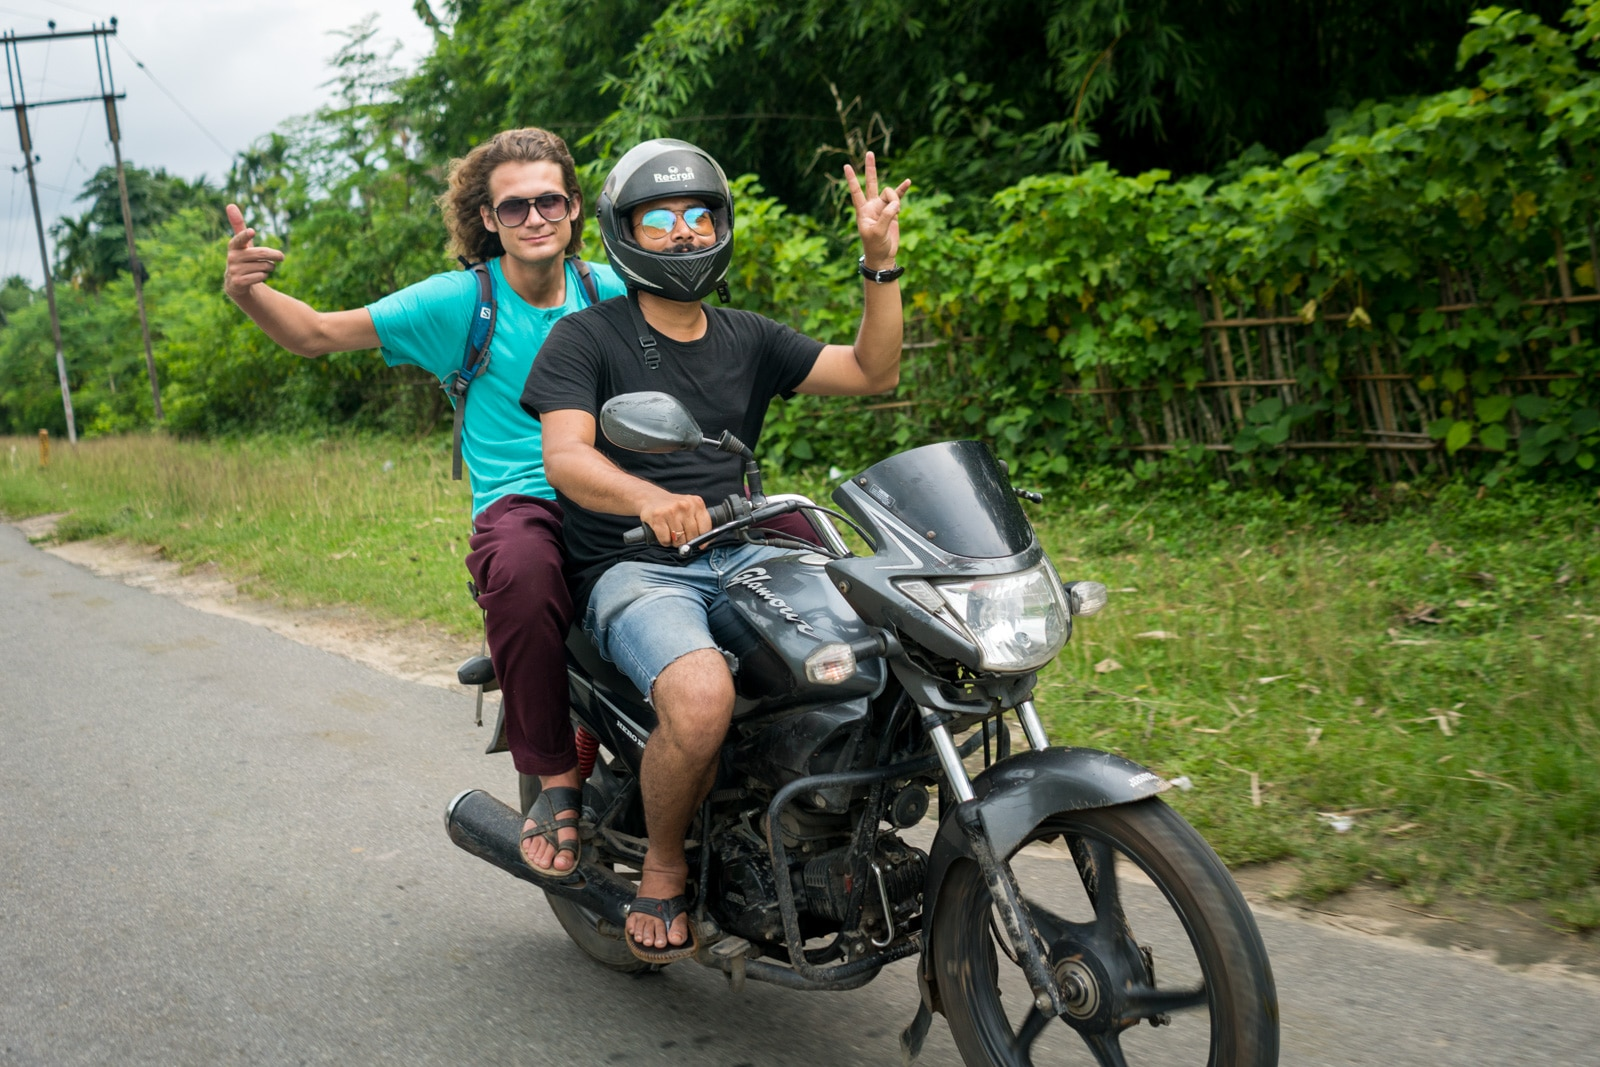 Why you need to travel in Northeast India - Sebastiaan motorbiking around with a friend in Guwahati, Assam - Lost With Purpose travel blog